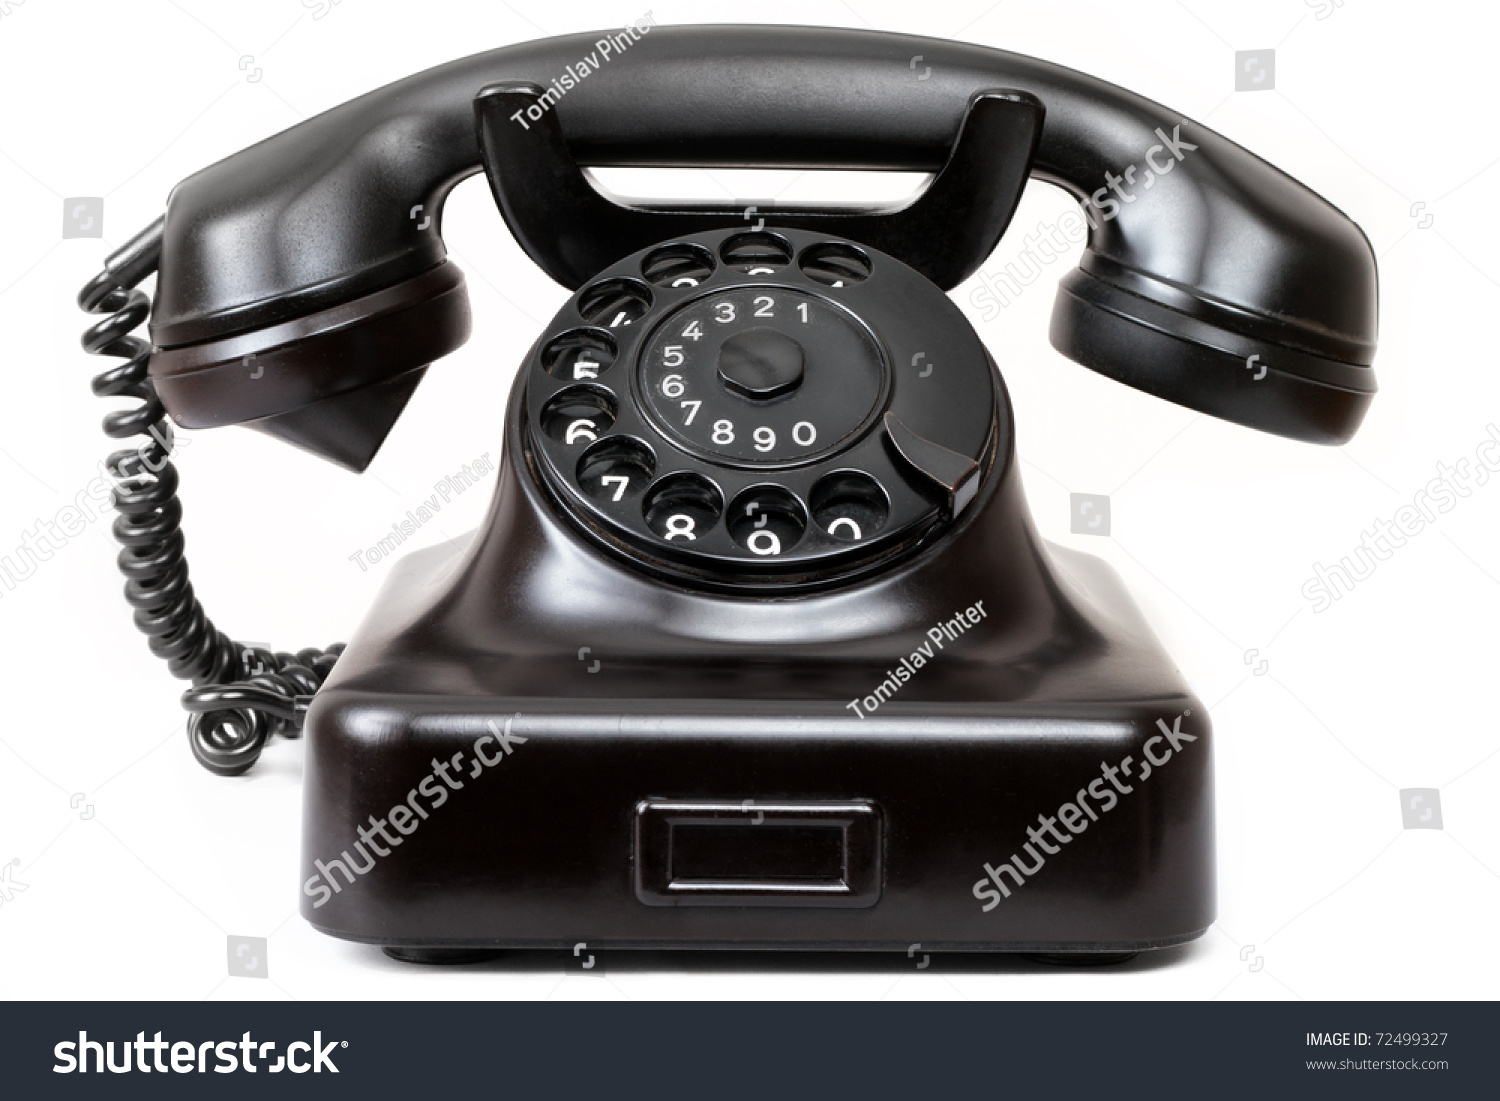 Old Phone Stock Photo 72499327  Shutterstock. Cooking Class Sacramento Executive Mba Online. Sharepoint Business Intelligence Training. Spanish Courses In Barcelona. Employment Contract Law Job Search Engine Com. Online Cosmetology School 360 Review Of Boss. Temporary Storage Area Corporate Design Firms. Google Web Hosting Plans Ucla Masters Program. Clustering Algorithms In Data Mining